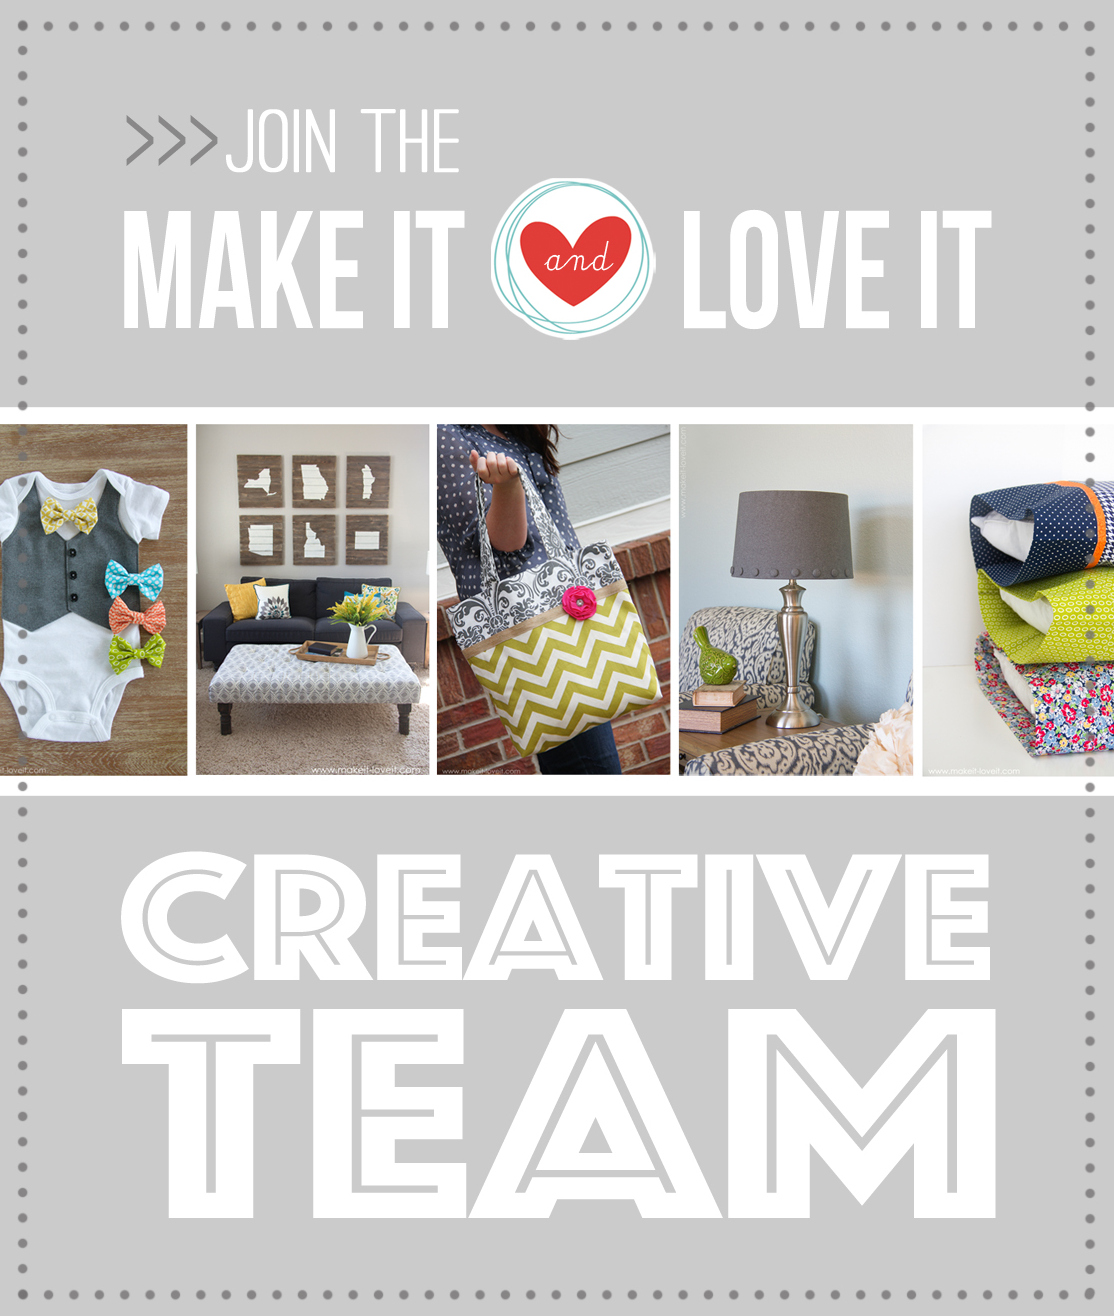 JOIN the Make It And Love It Team!